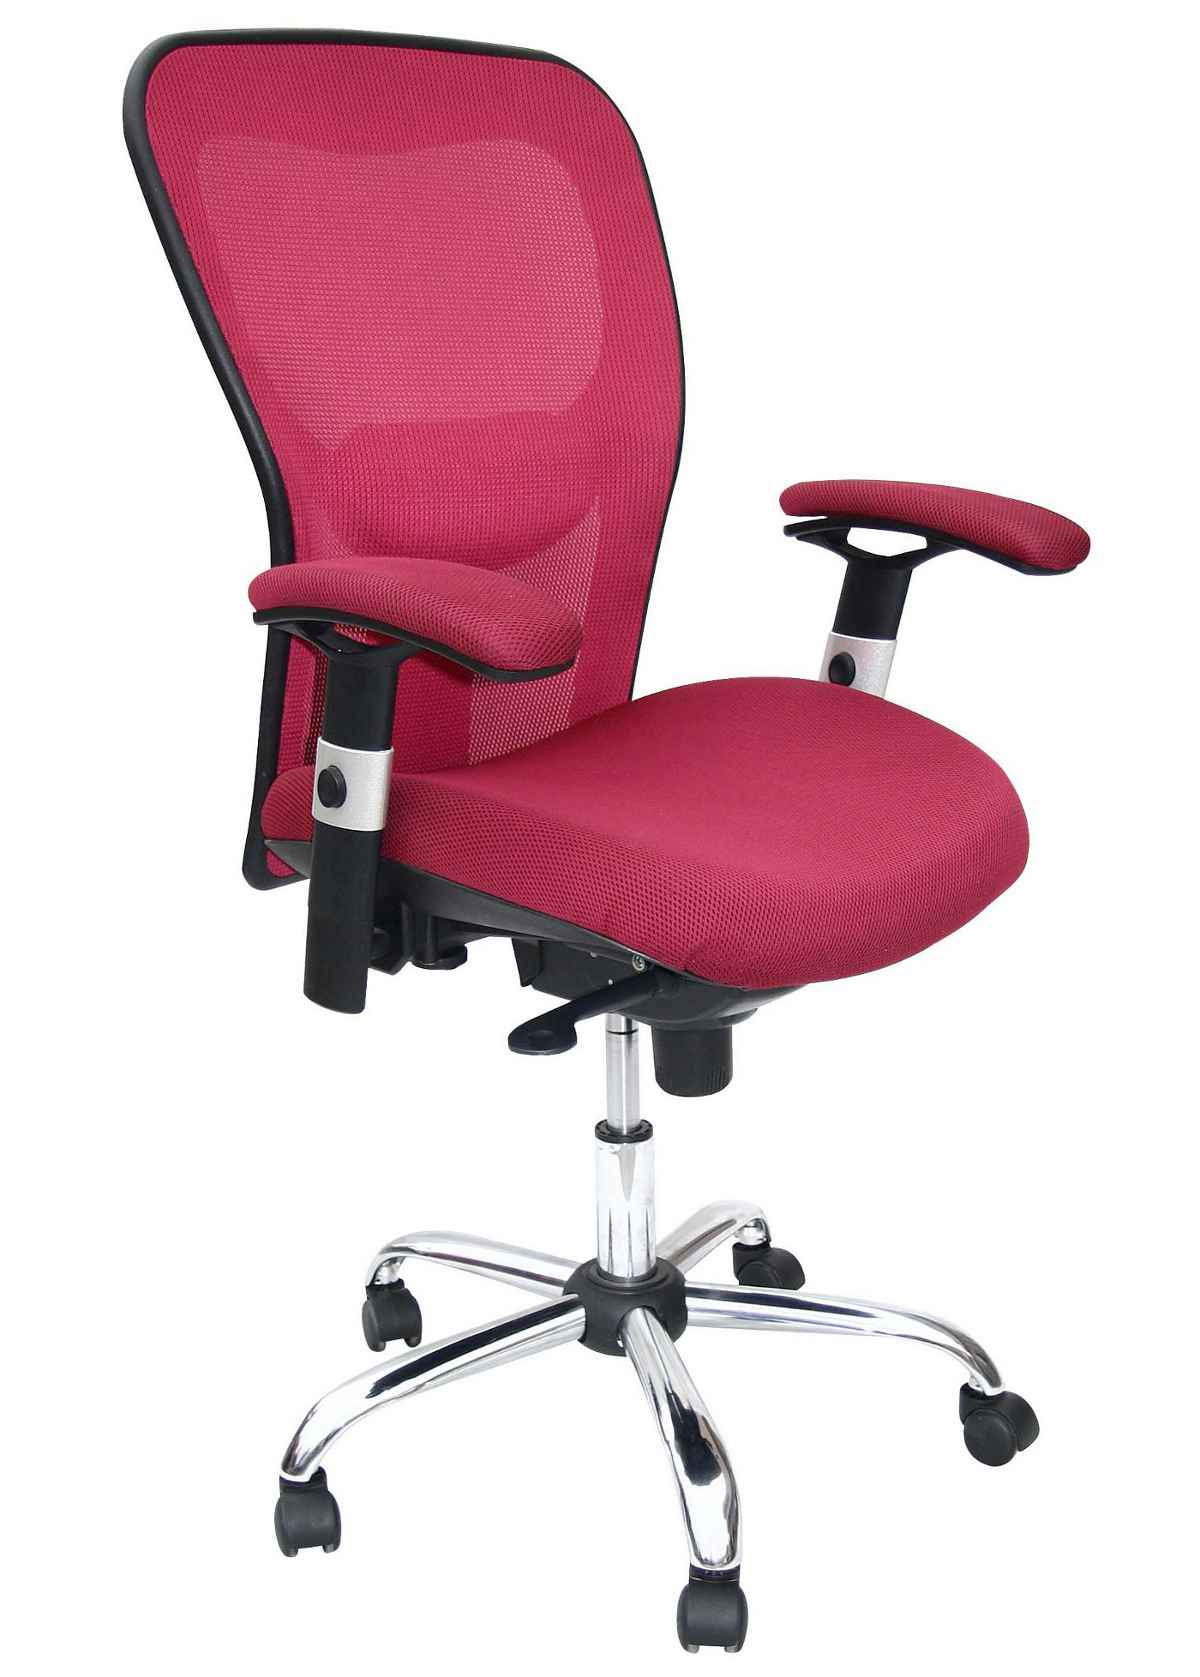 Zonman Pink Mesh Office Computer Chair with Arms